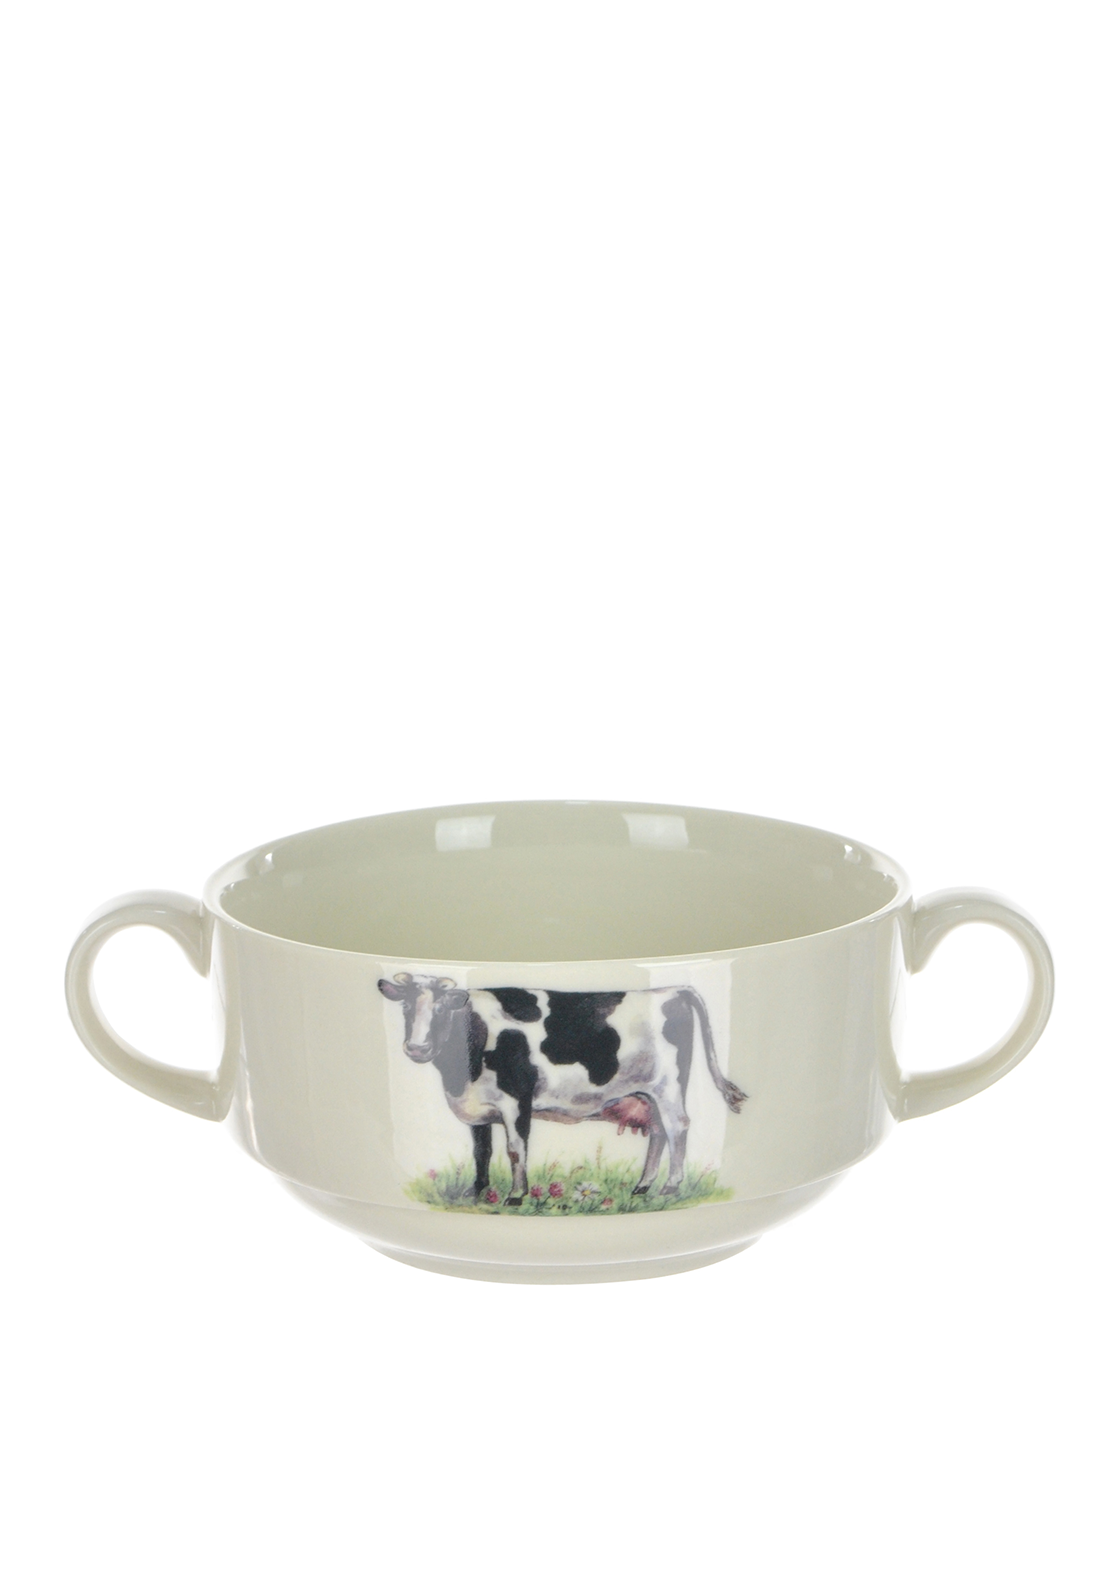 Shannonbridge Ireland Farm Cow Handled Soup Bowl with Matching Plate